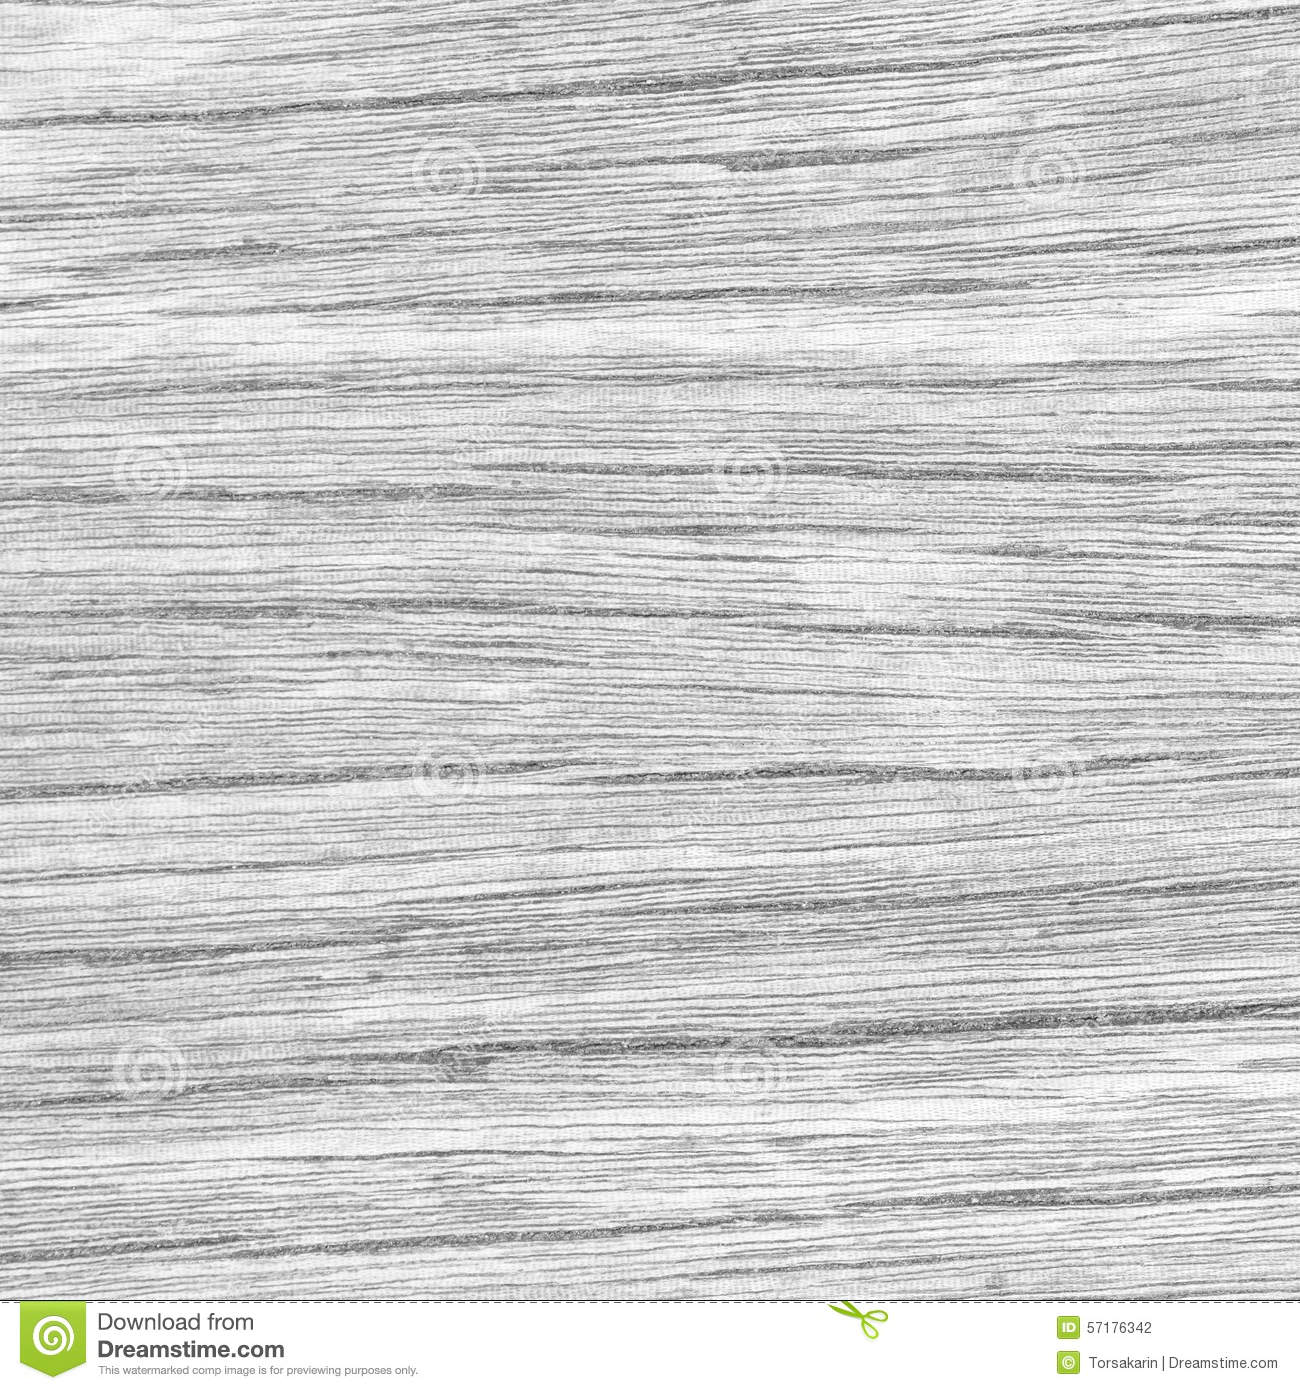 Natural White Wood Texture Stock Photo Image Of Gray 57176342